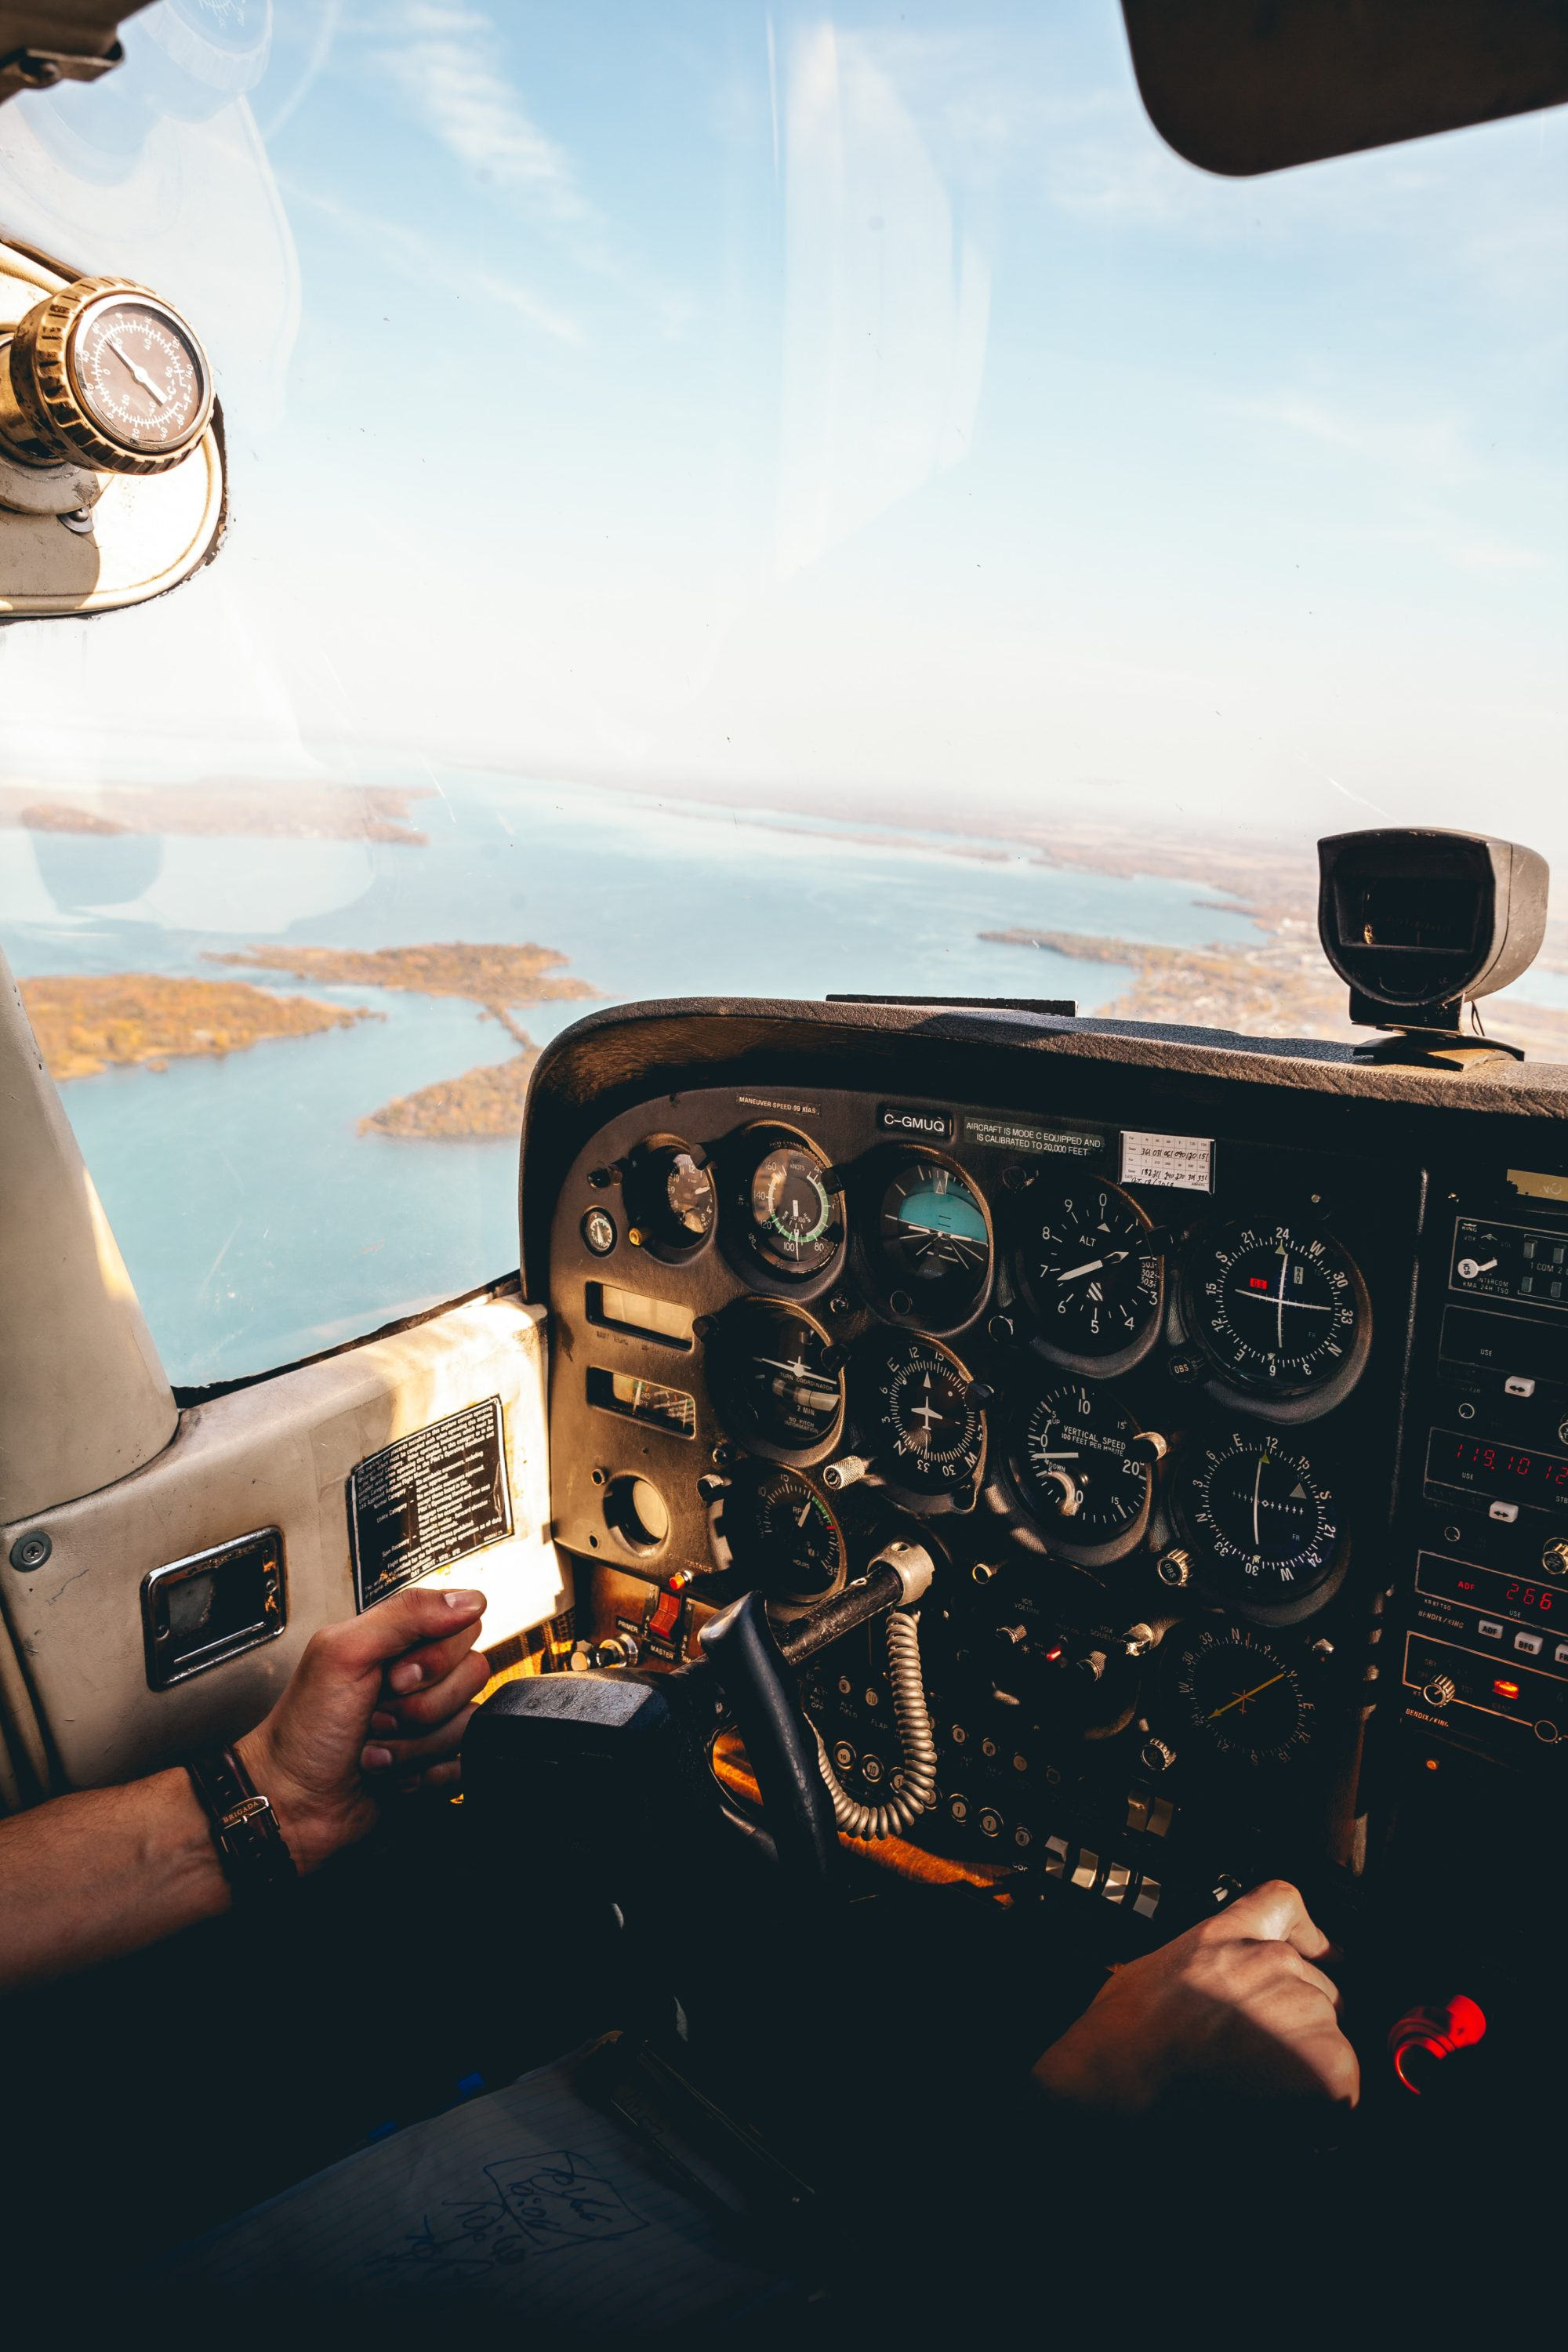 Often drone beginners are not aware that they'll be tested on a series of aviation subjects during their FAA Part 107 commercial drone license exam.